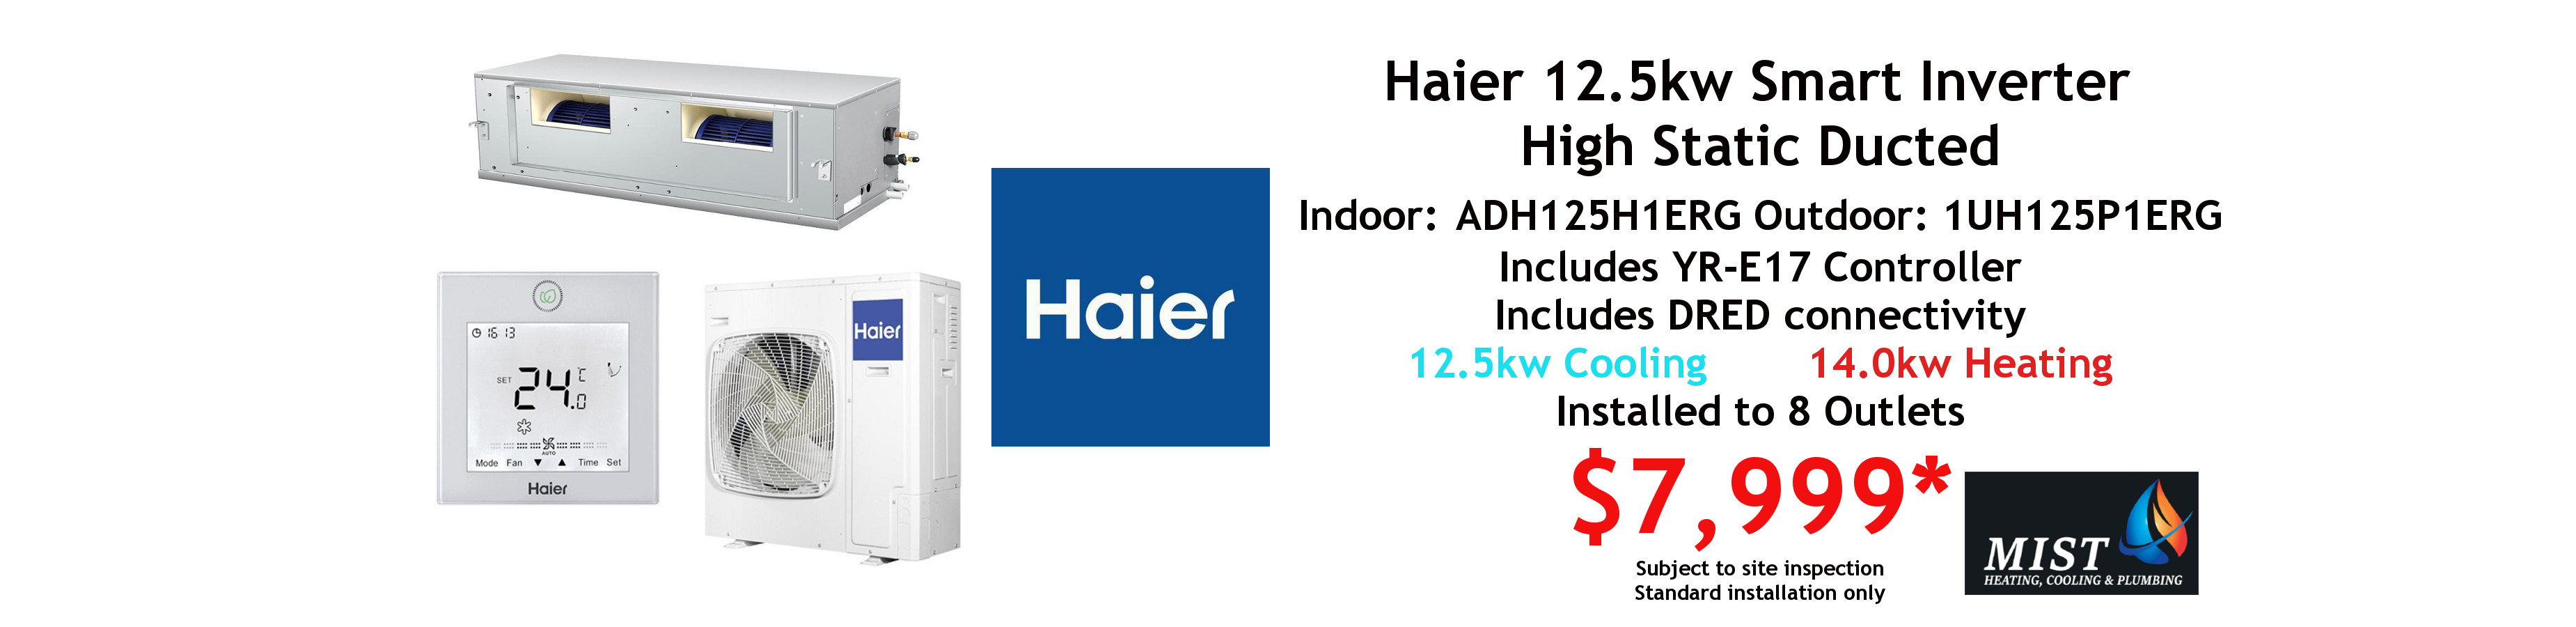 haier 12.5kw ducted special